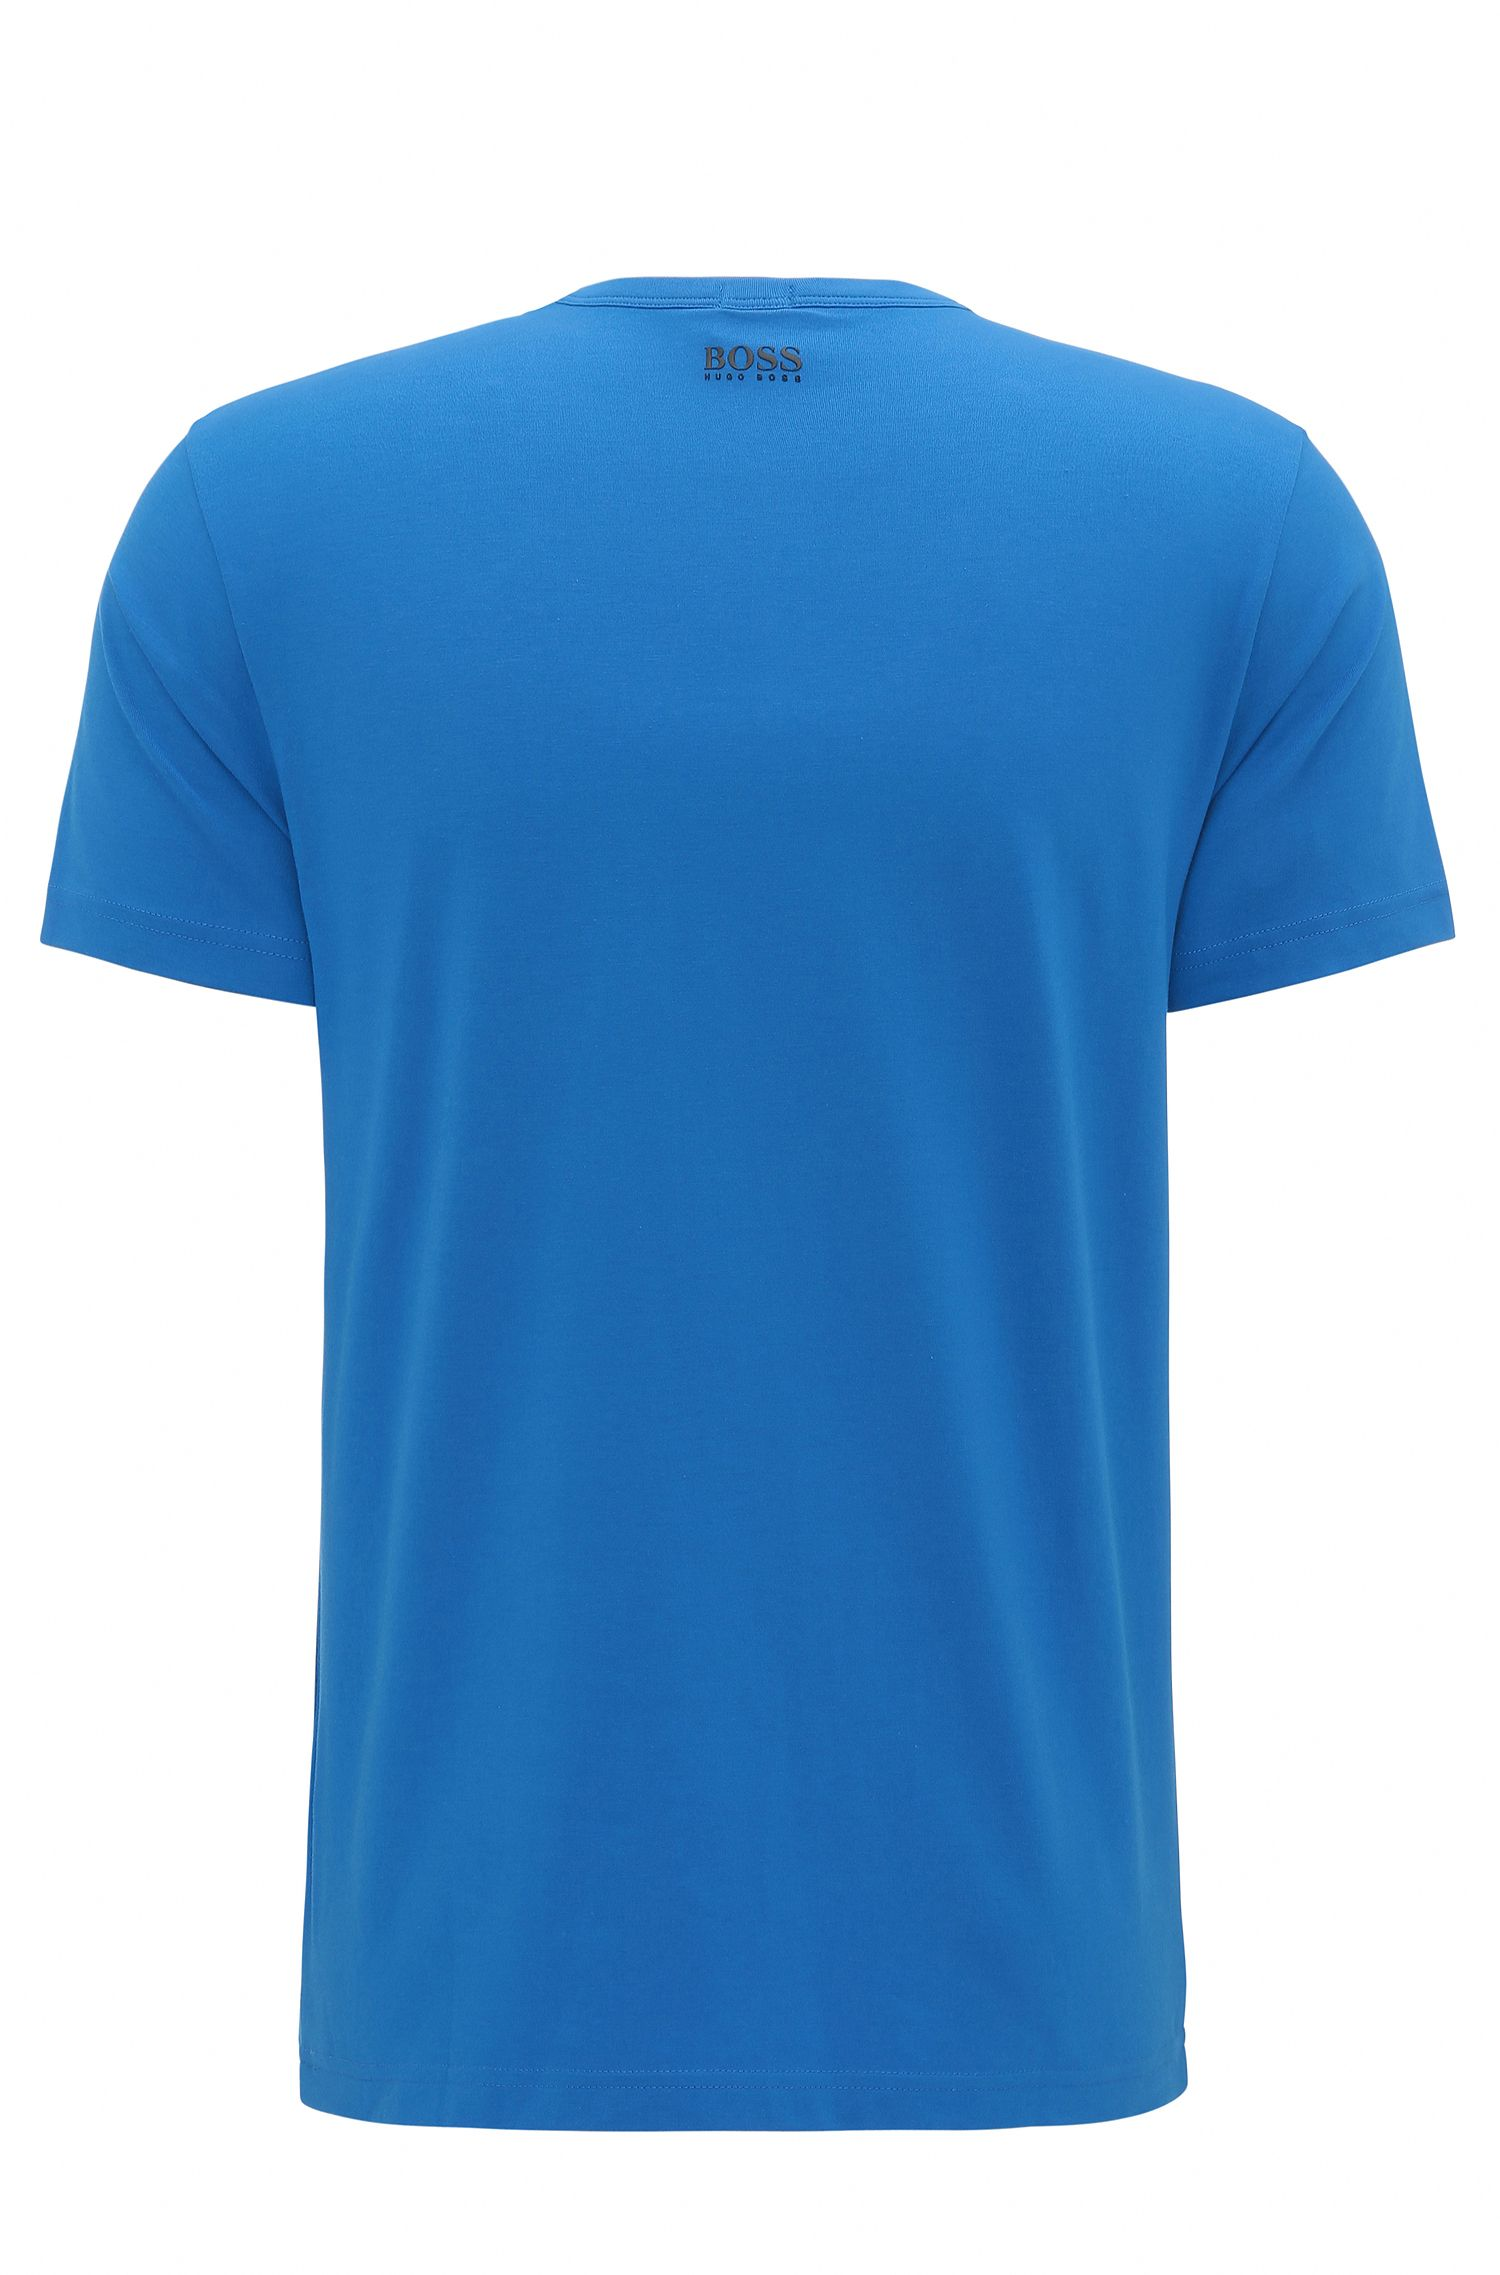 Regular-fit logo T-shirt in stretch cotton